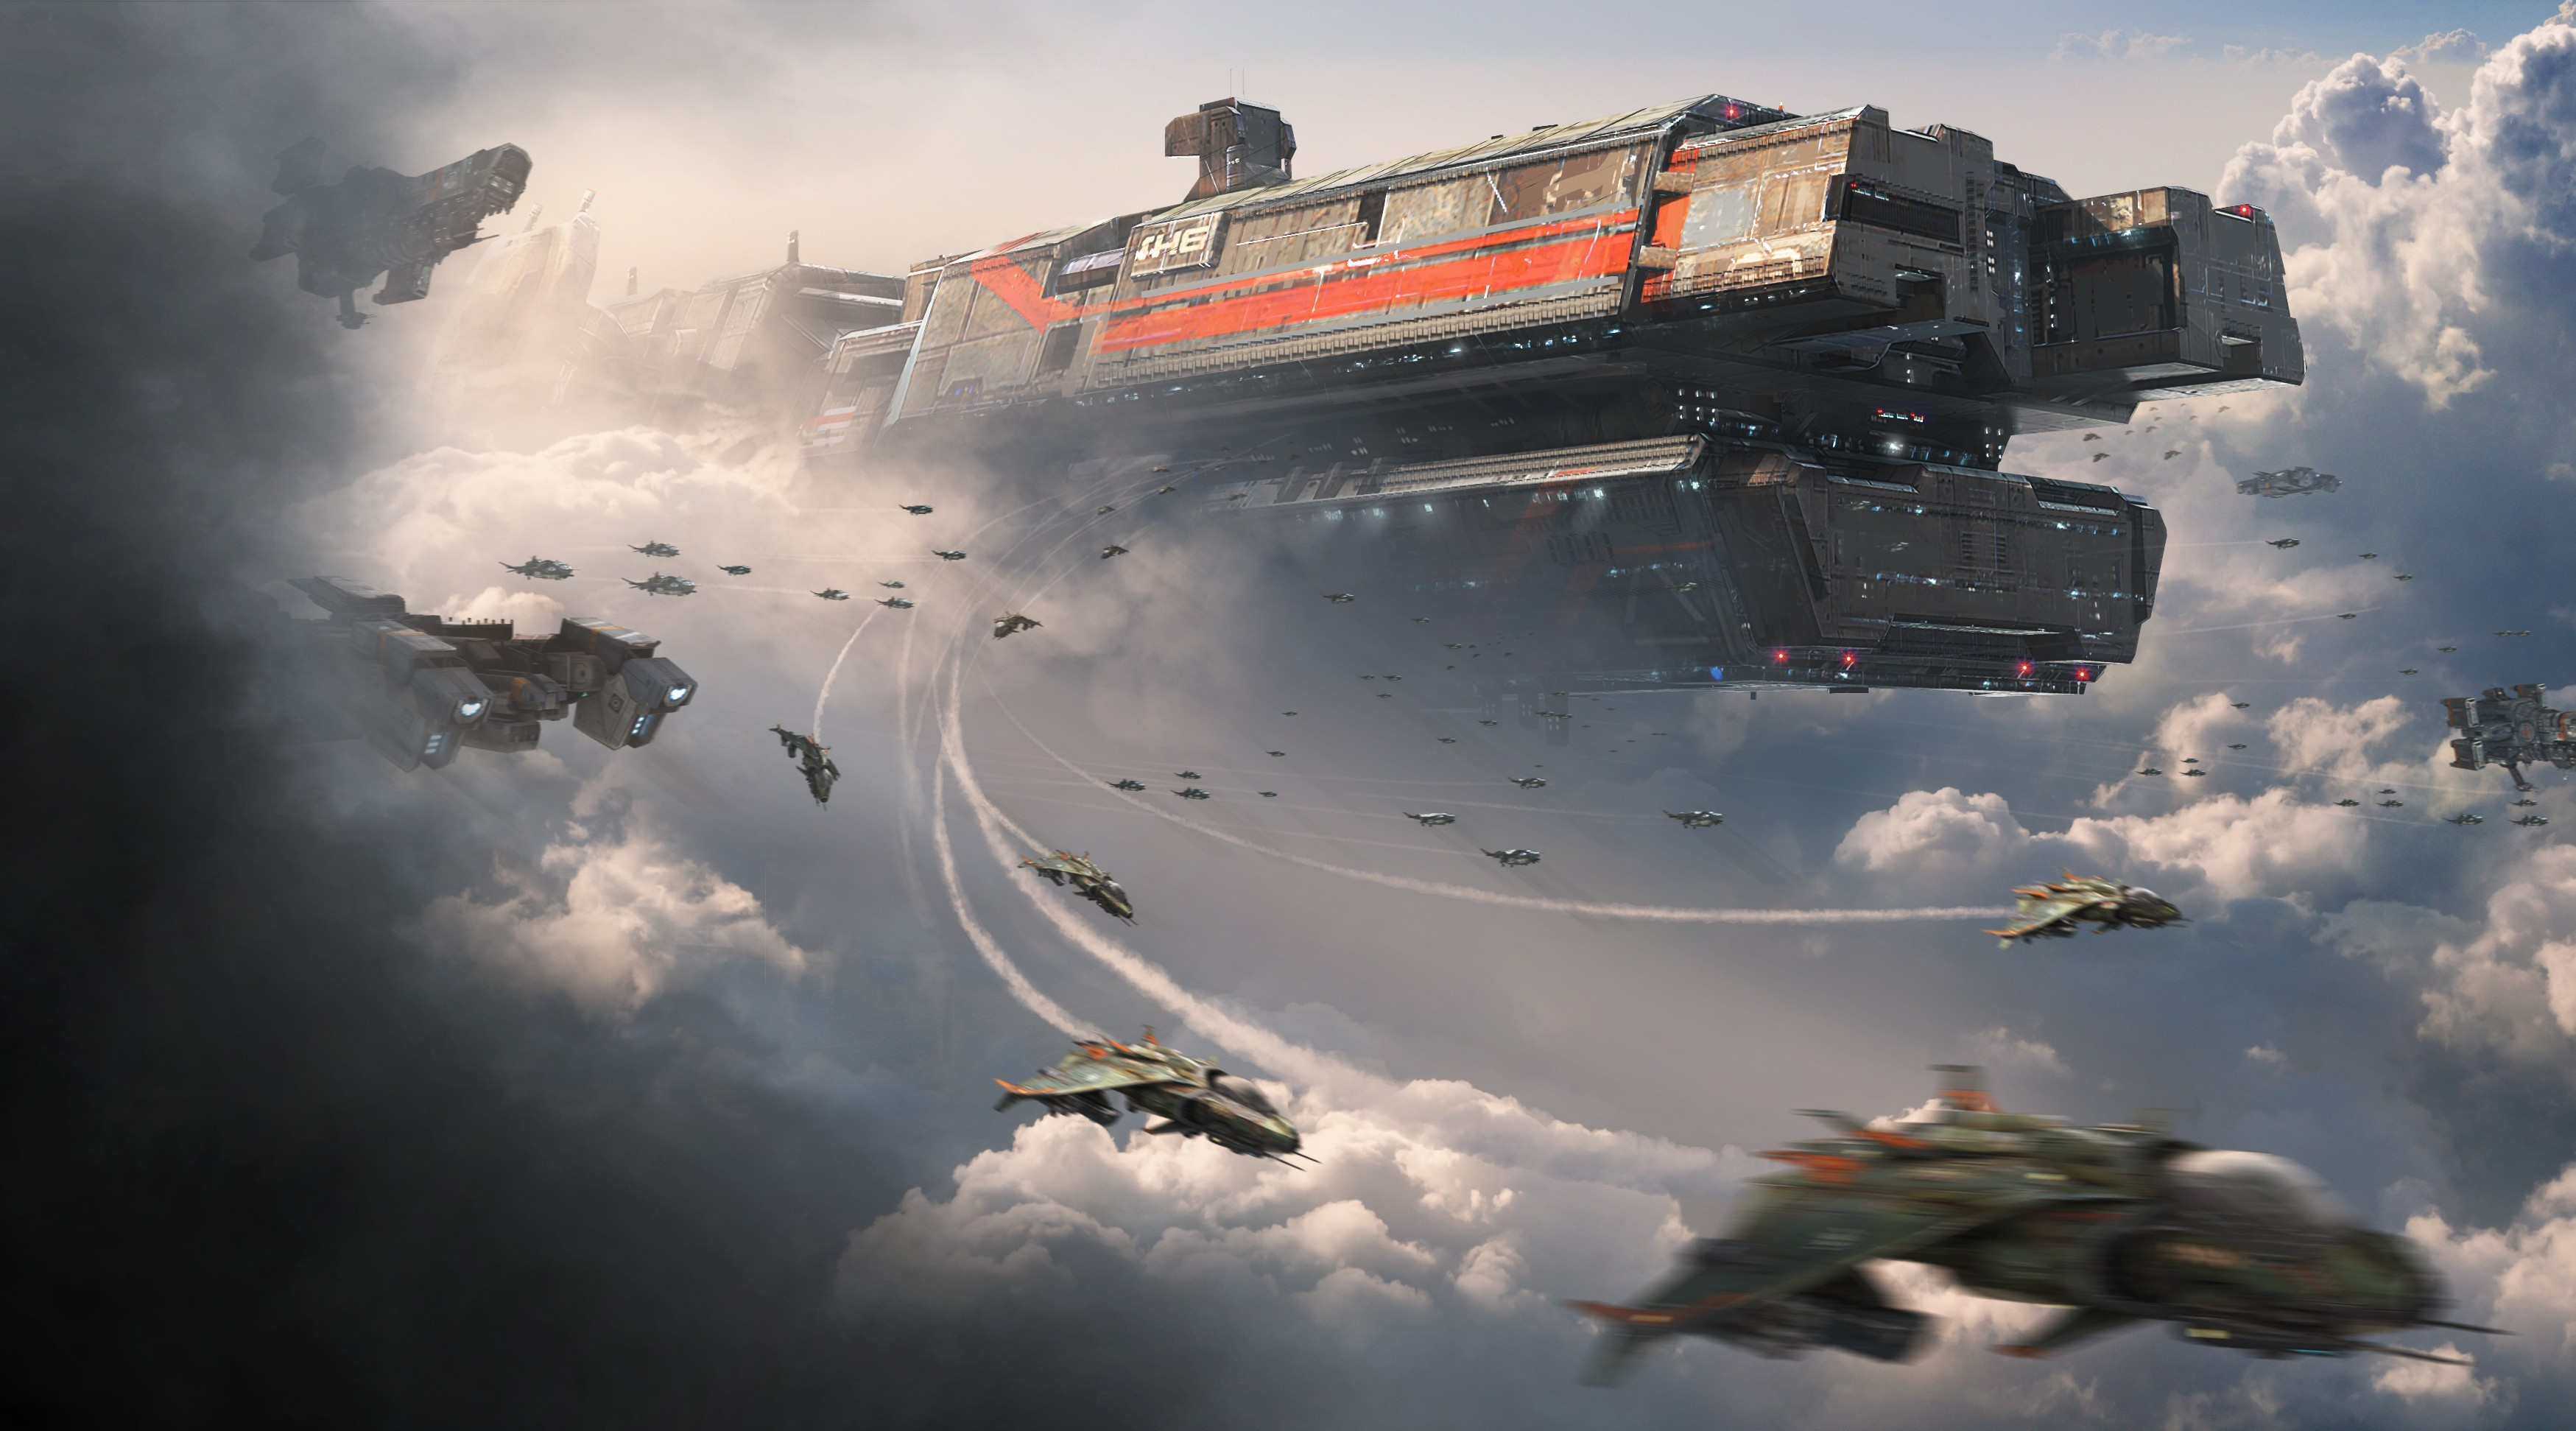 General 3498x1943 fantasy art science fiction digital art futuristic spaceship space universe technology Titanfall sky clouds video games flying aircraft lights artwork